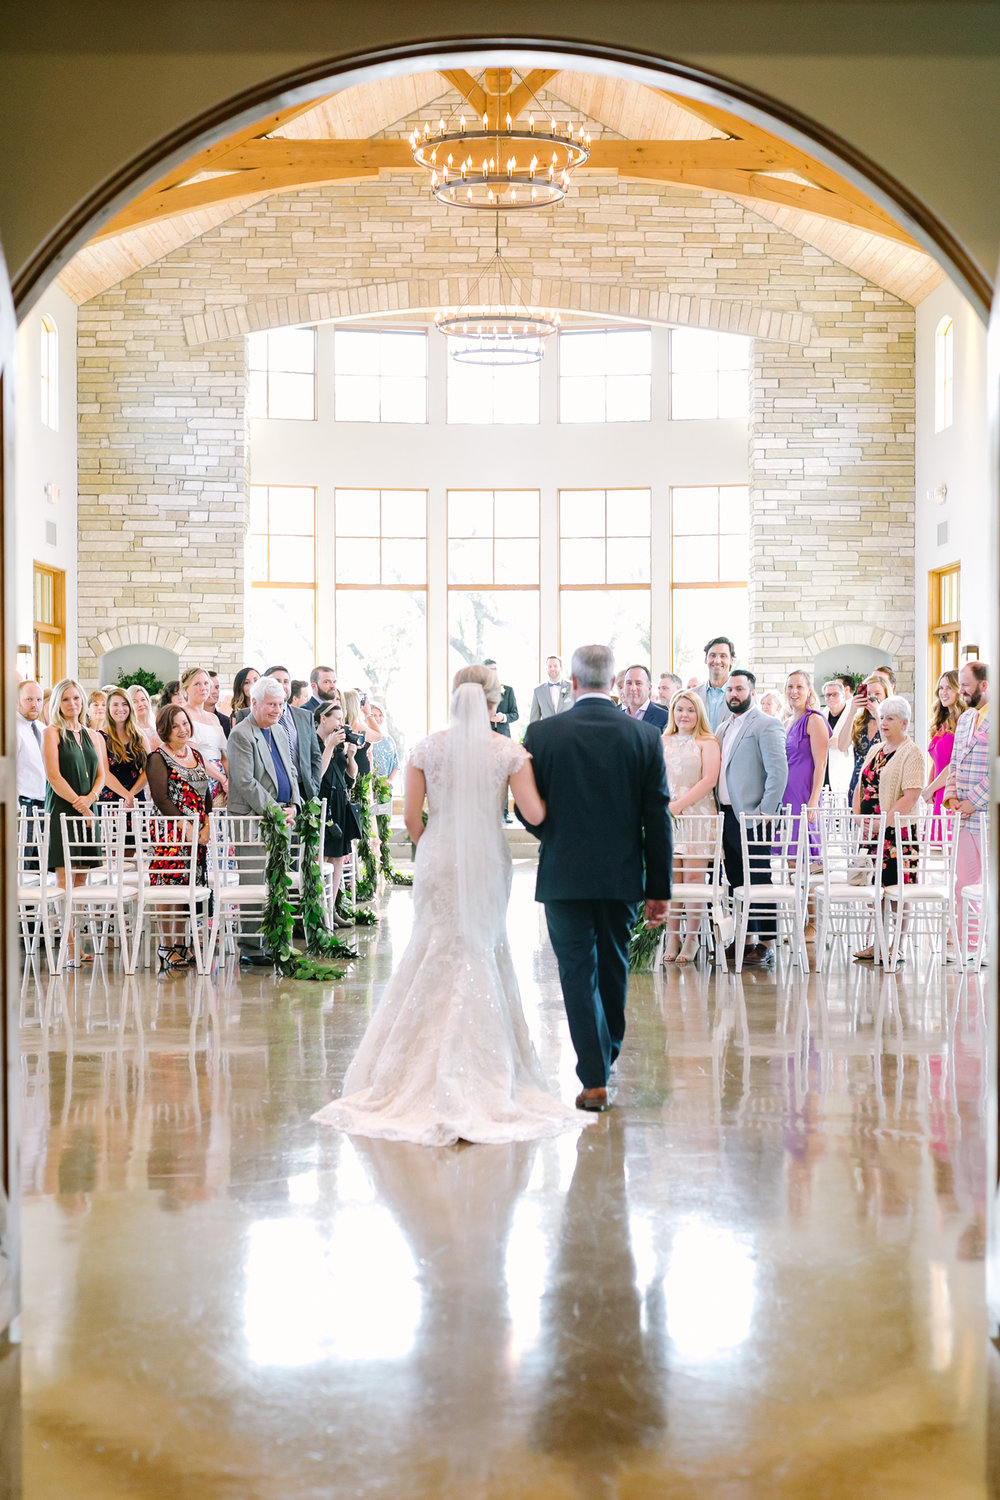 Austin_Wedding_Photographer_Kimberly_Brooke_Photographic_013.jpg